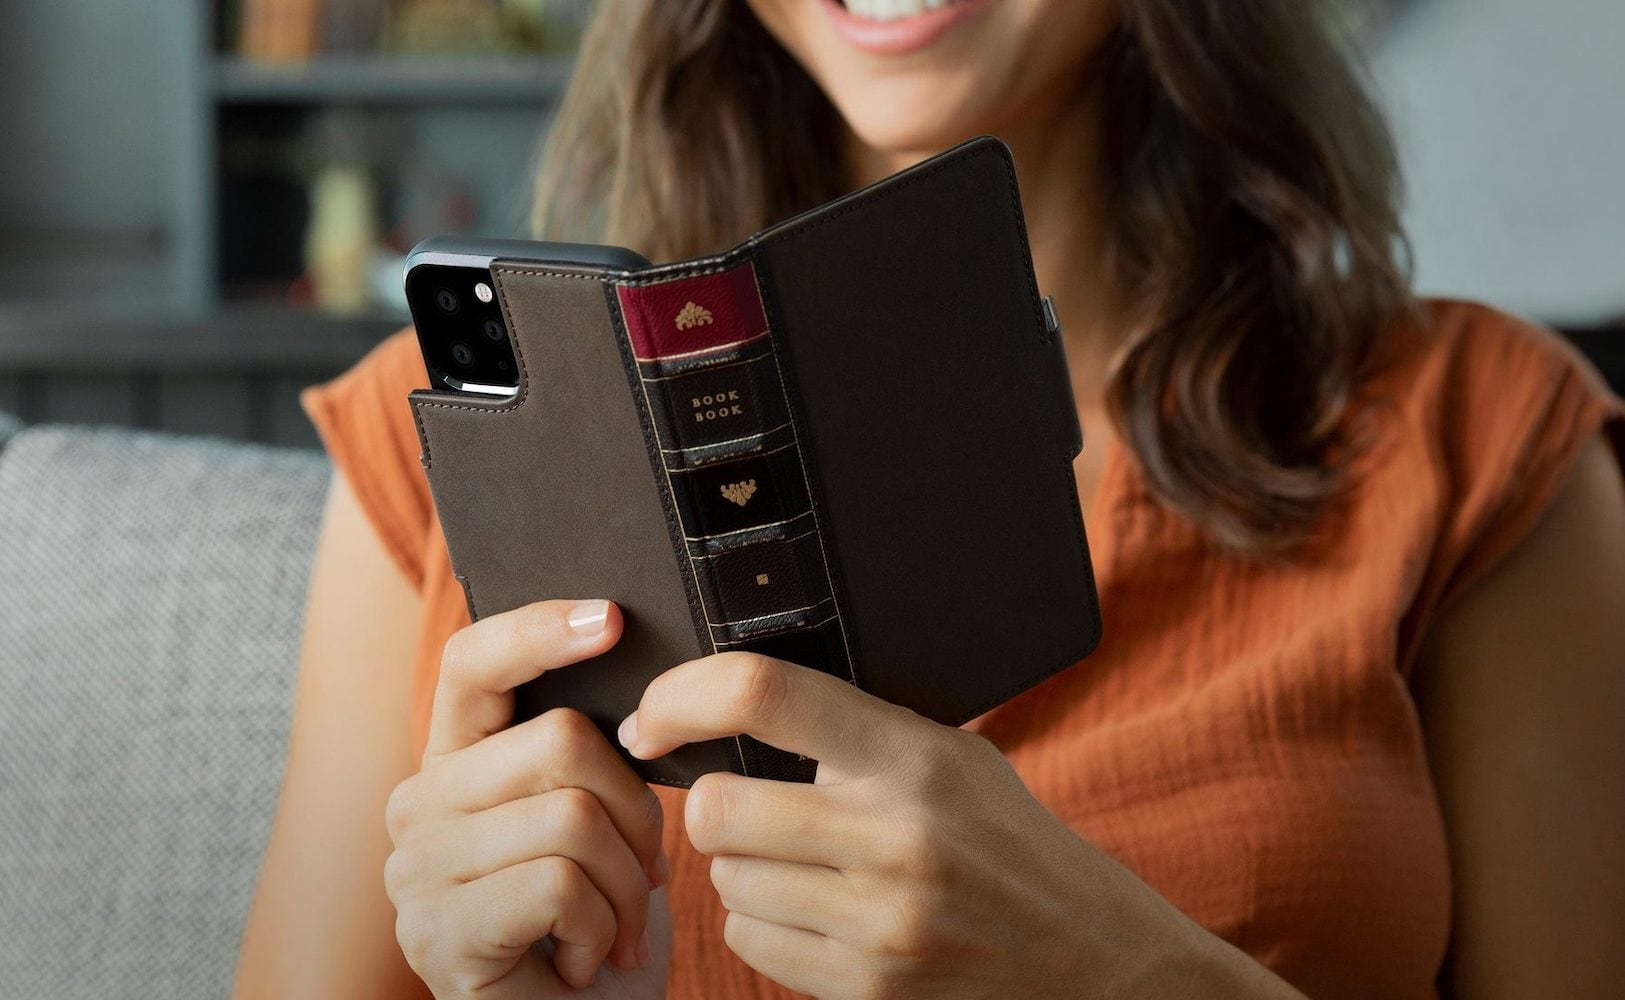 BookBook vol. 2 iPhone 11 Pro Wallet Case by Twelve South transforms your smartphone into an old novel